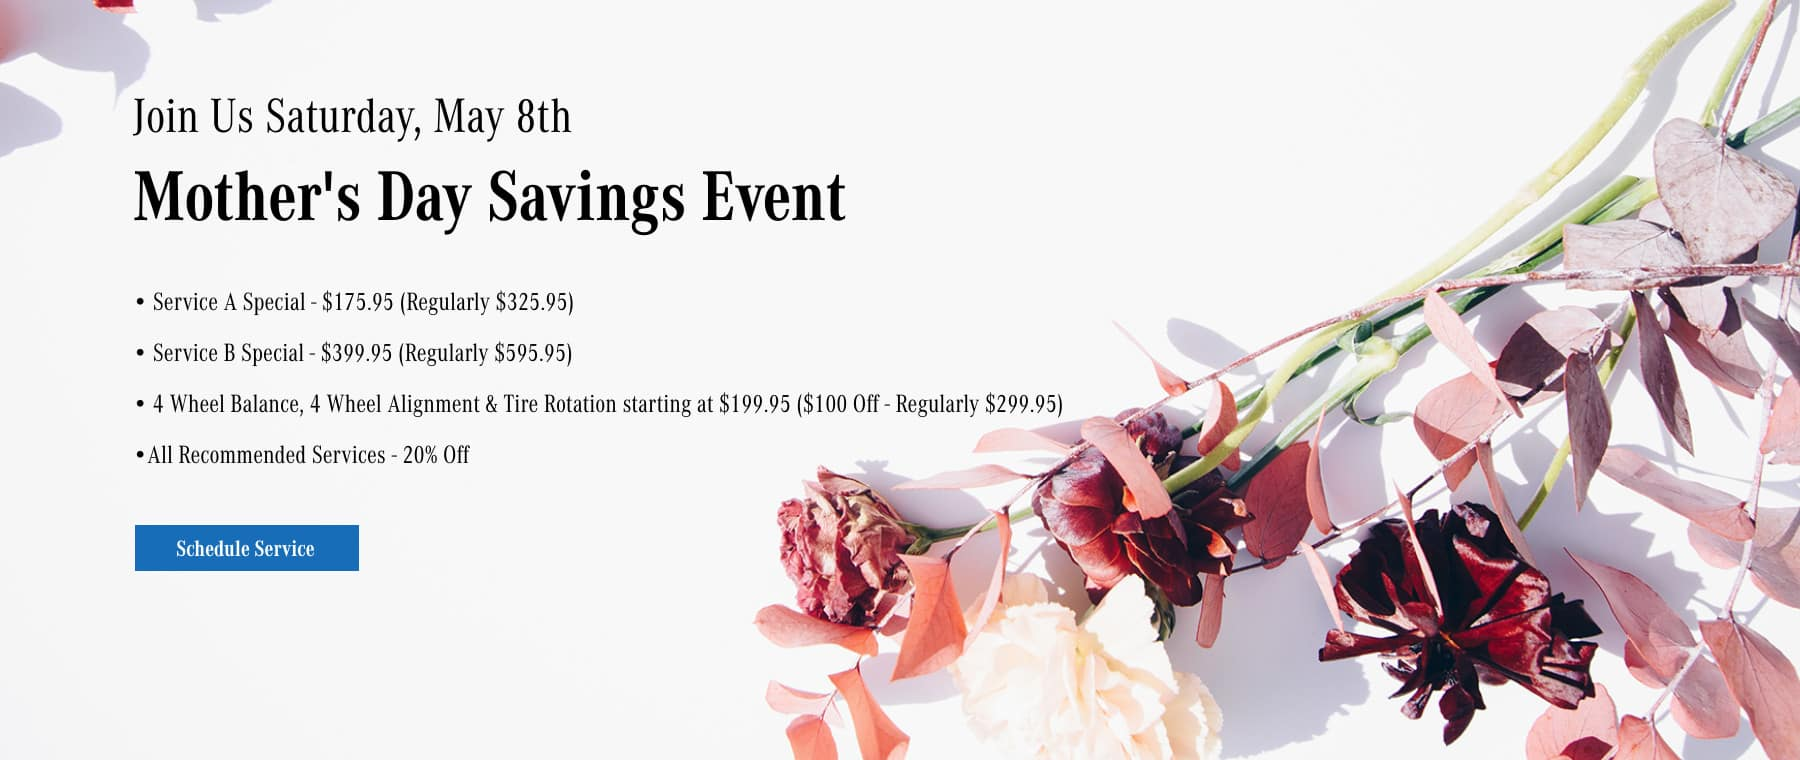 Mother's Day Savings Event